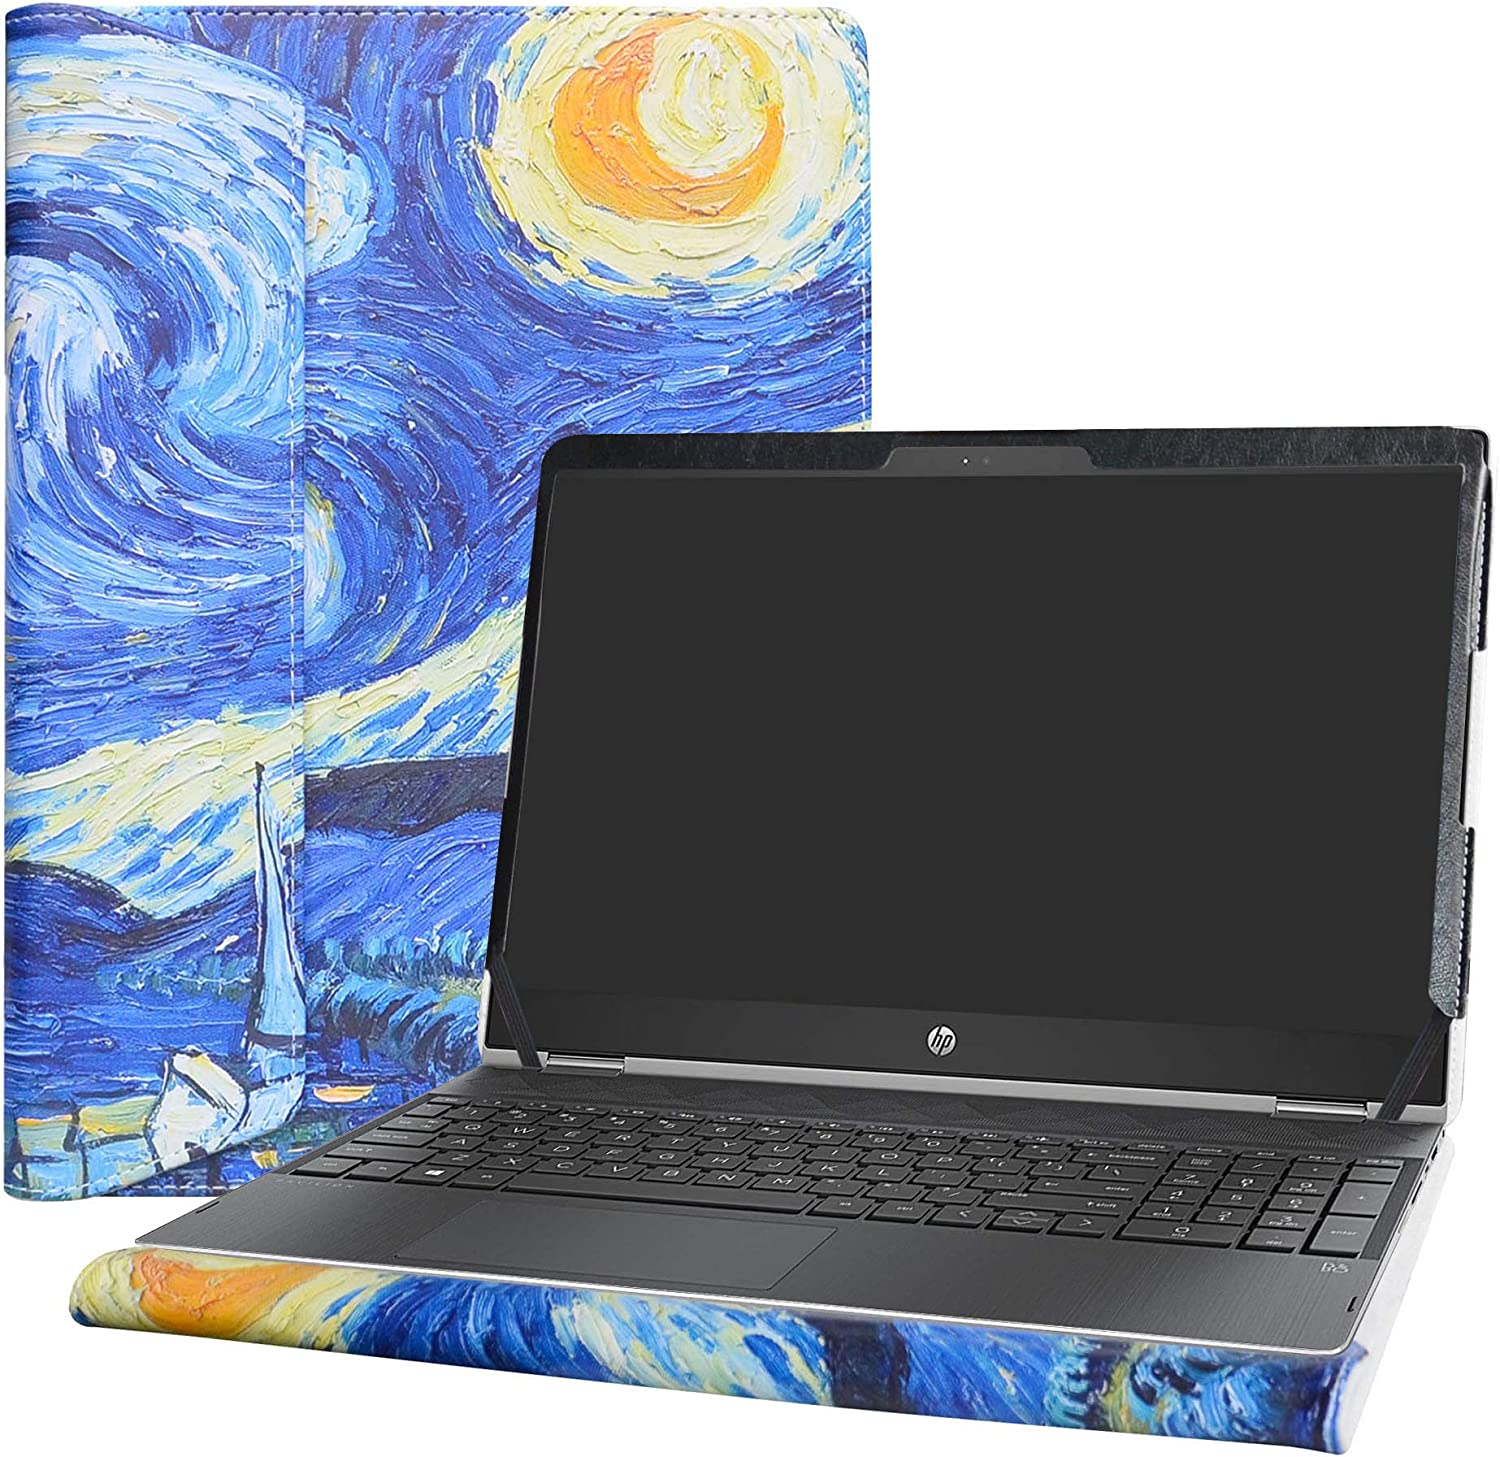 """Alapmk Protective Case Cover for 15.6"""" HP Pavilion X360 15 15-crXXXX (15-cr0000 to 15-cr9999,Such as 15-cr0011nr 15-cr0010nr) Laptop [Warning:Not fit Pavilion X360 15 15-brXXX 15-bkXXX],Starry Night"""